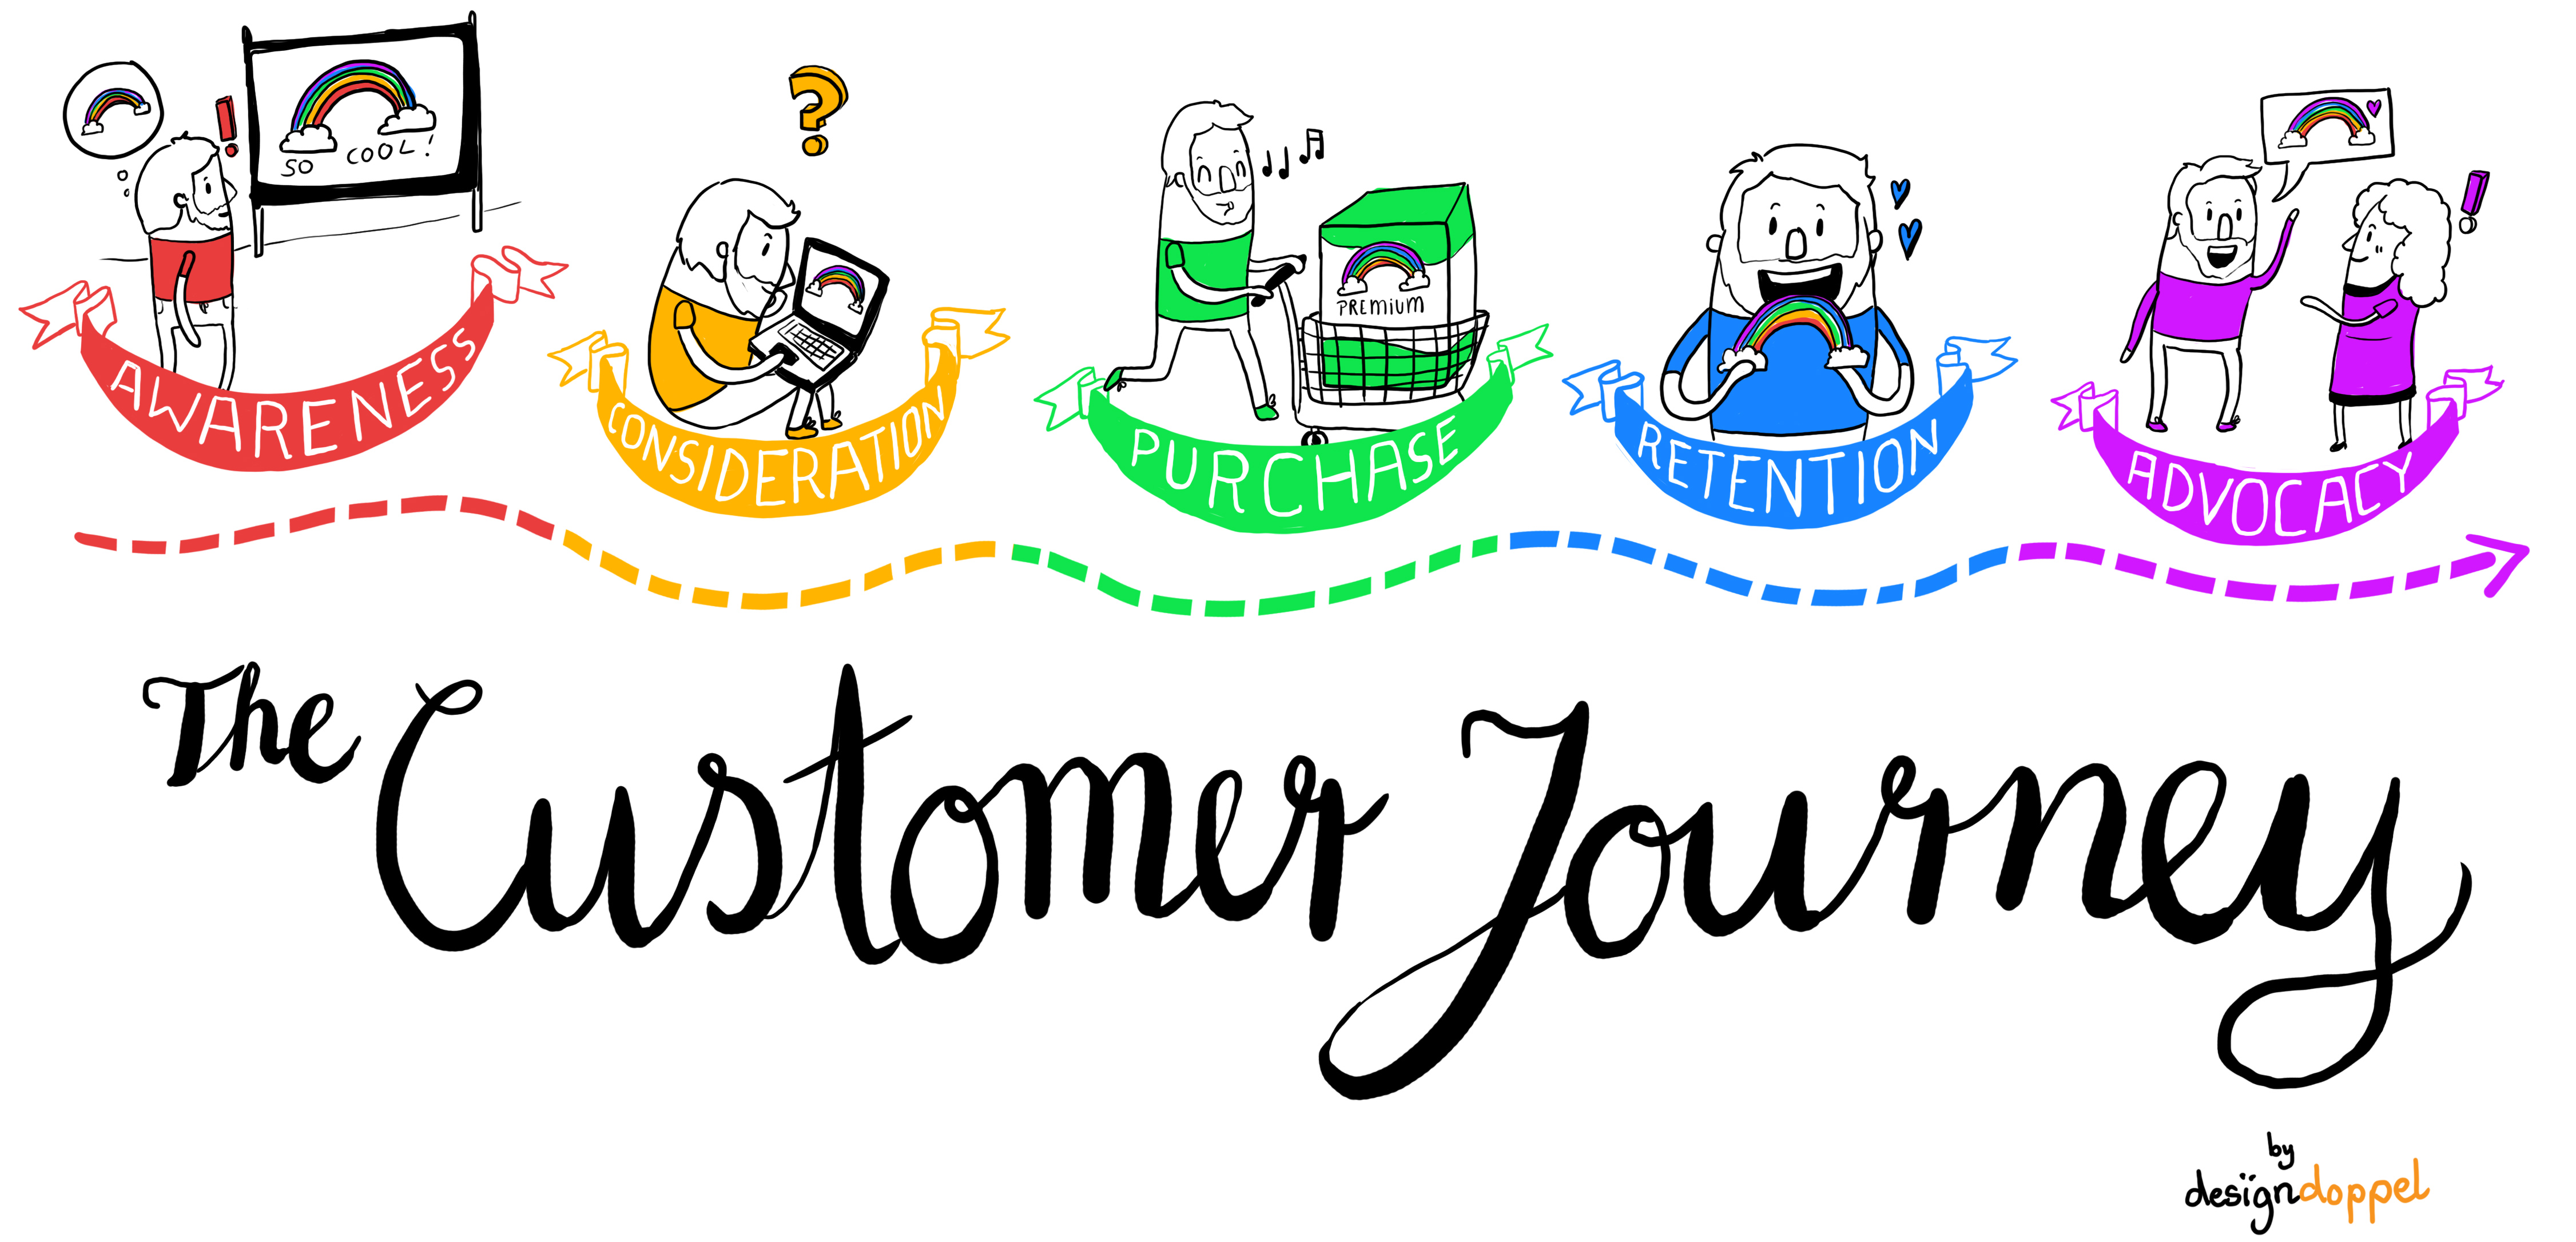 Customer Journey Illustration Designdoppel Graphic Recording